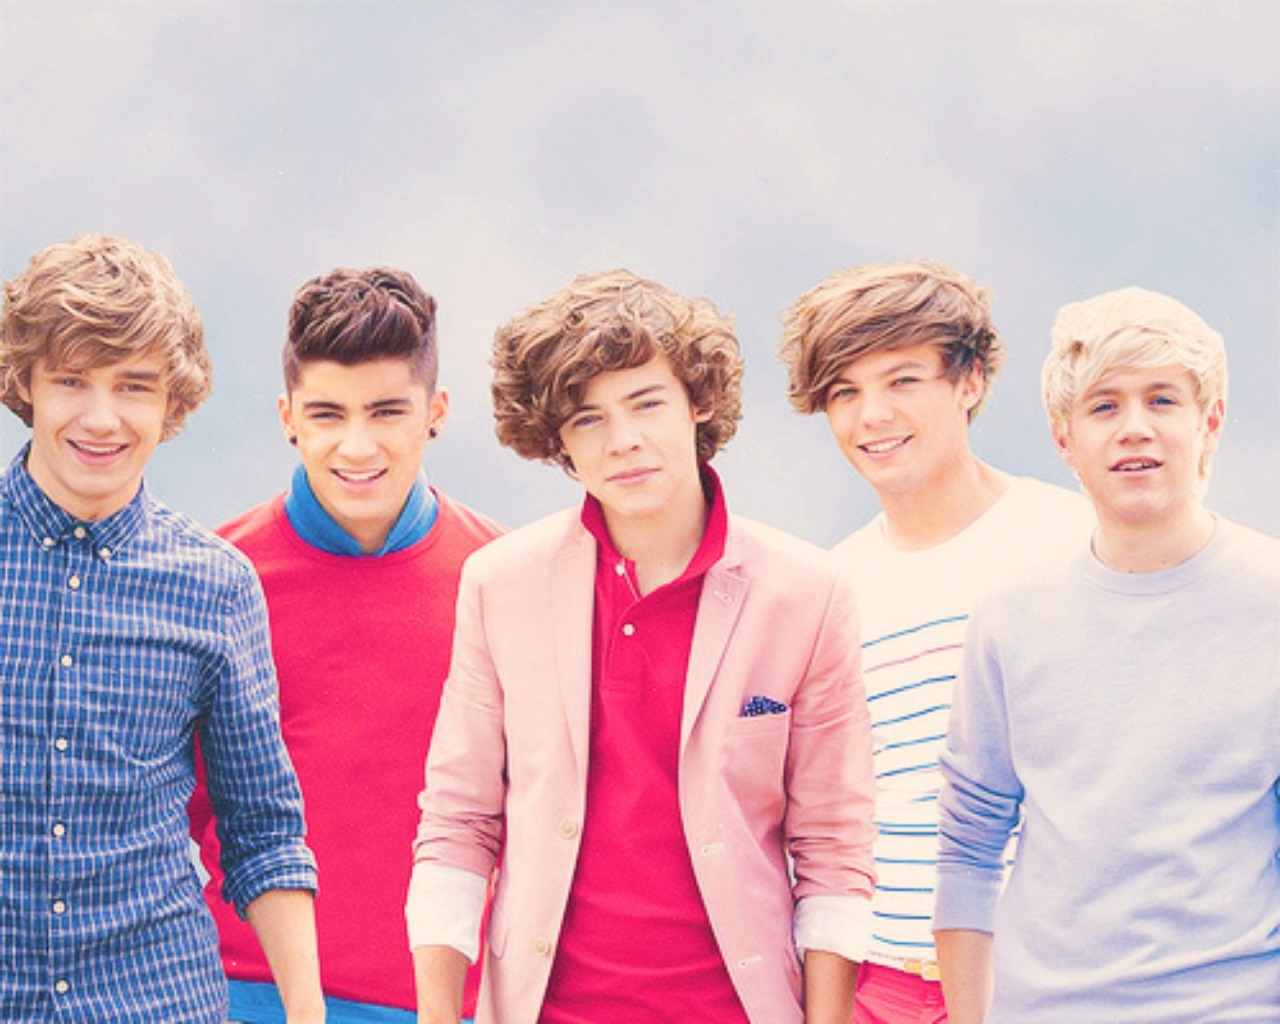 Liene11 Images One Direction 3 Hd Wallpaper And Background Photos